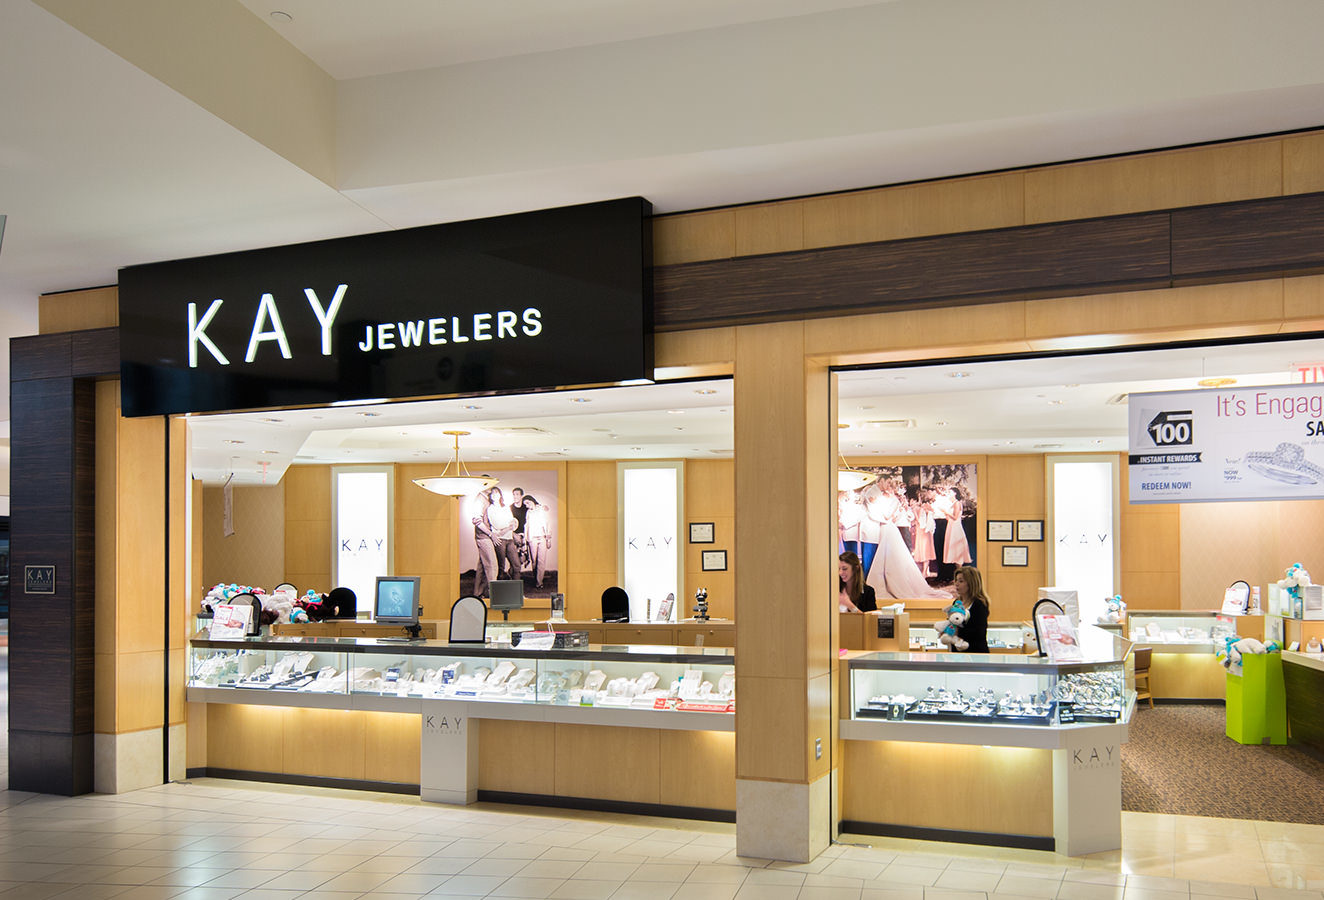 $14k Rolex stolen from Kay Jewelers in Tulare - WatchPro USA